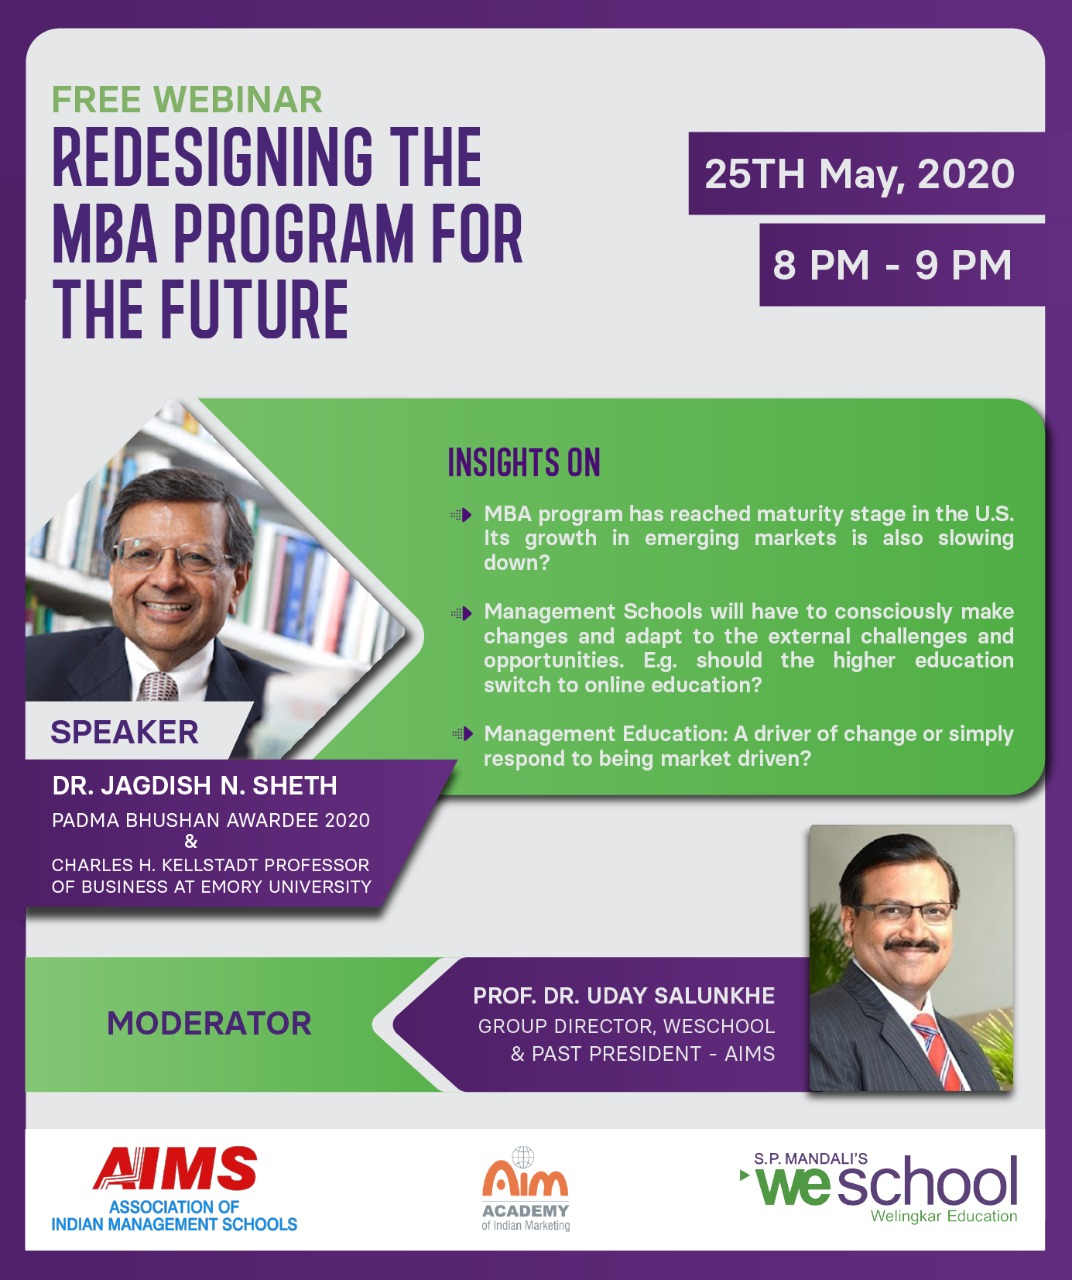 16th AIMS Webinar on 'Redesigning the MBA program for the future' by Padma Bhushan Dr. Jagdish N. Sheth